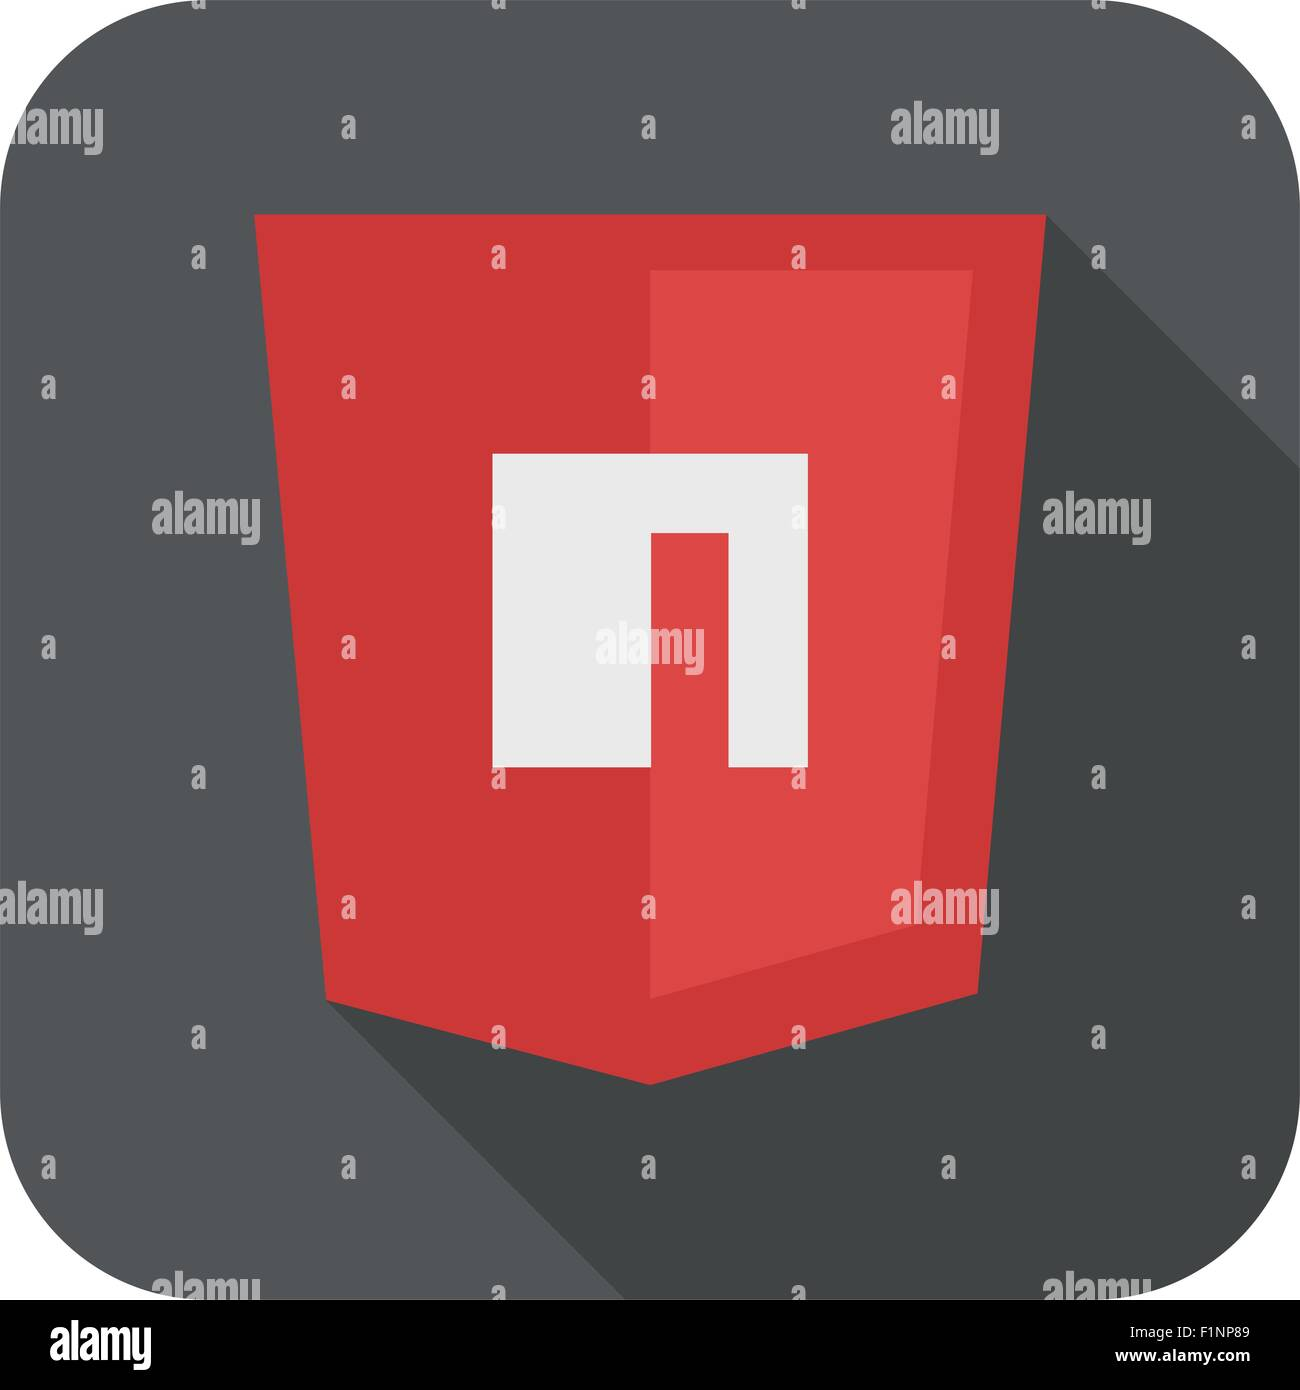 Vector illustration of purpur shield with N letter for packet manager, isolated site development icon on white - Stock Image